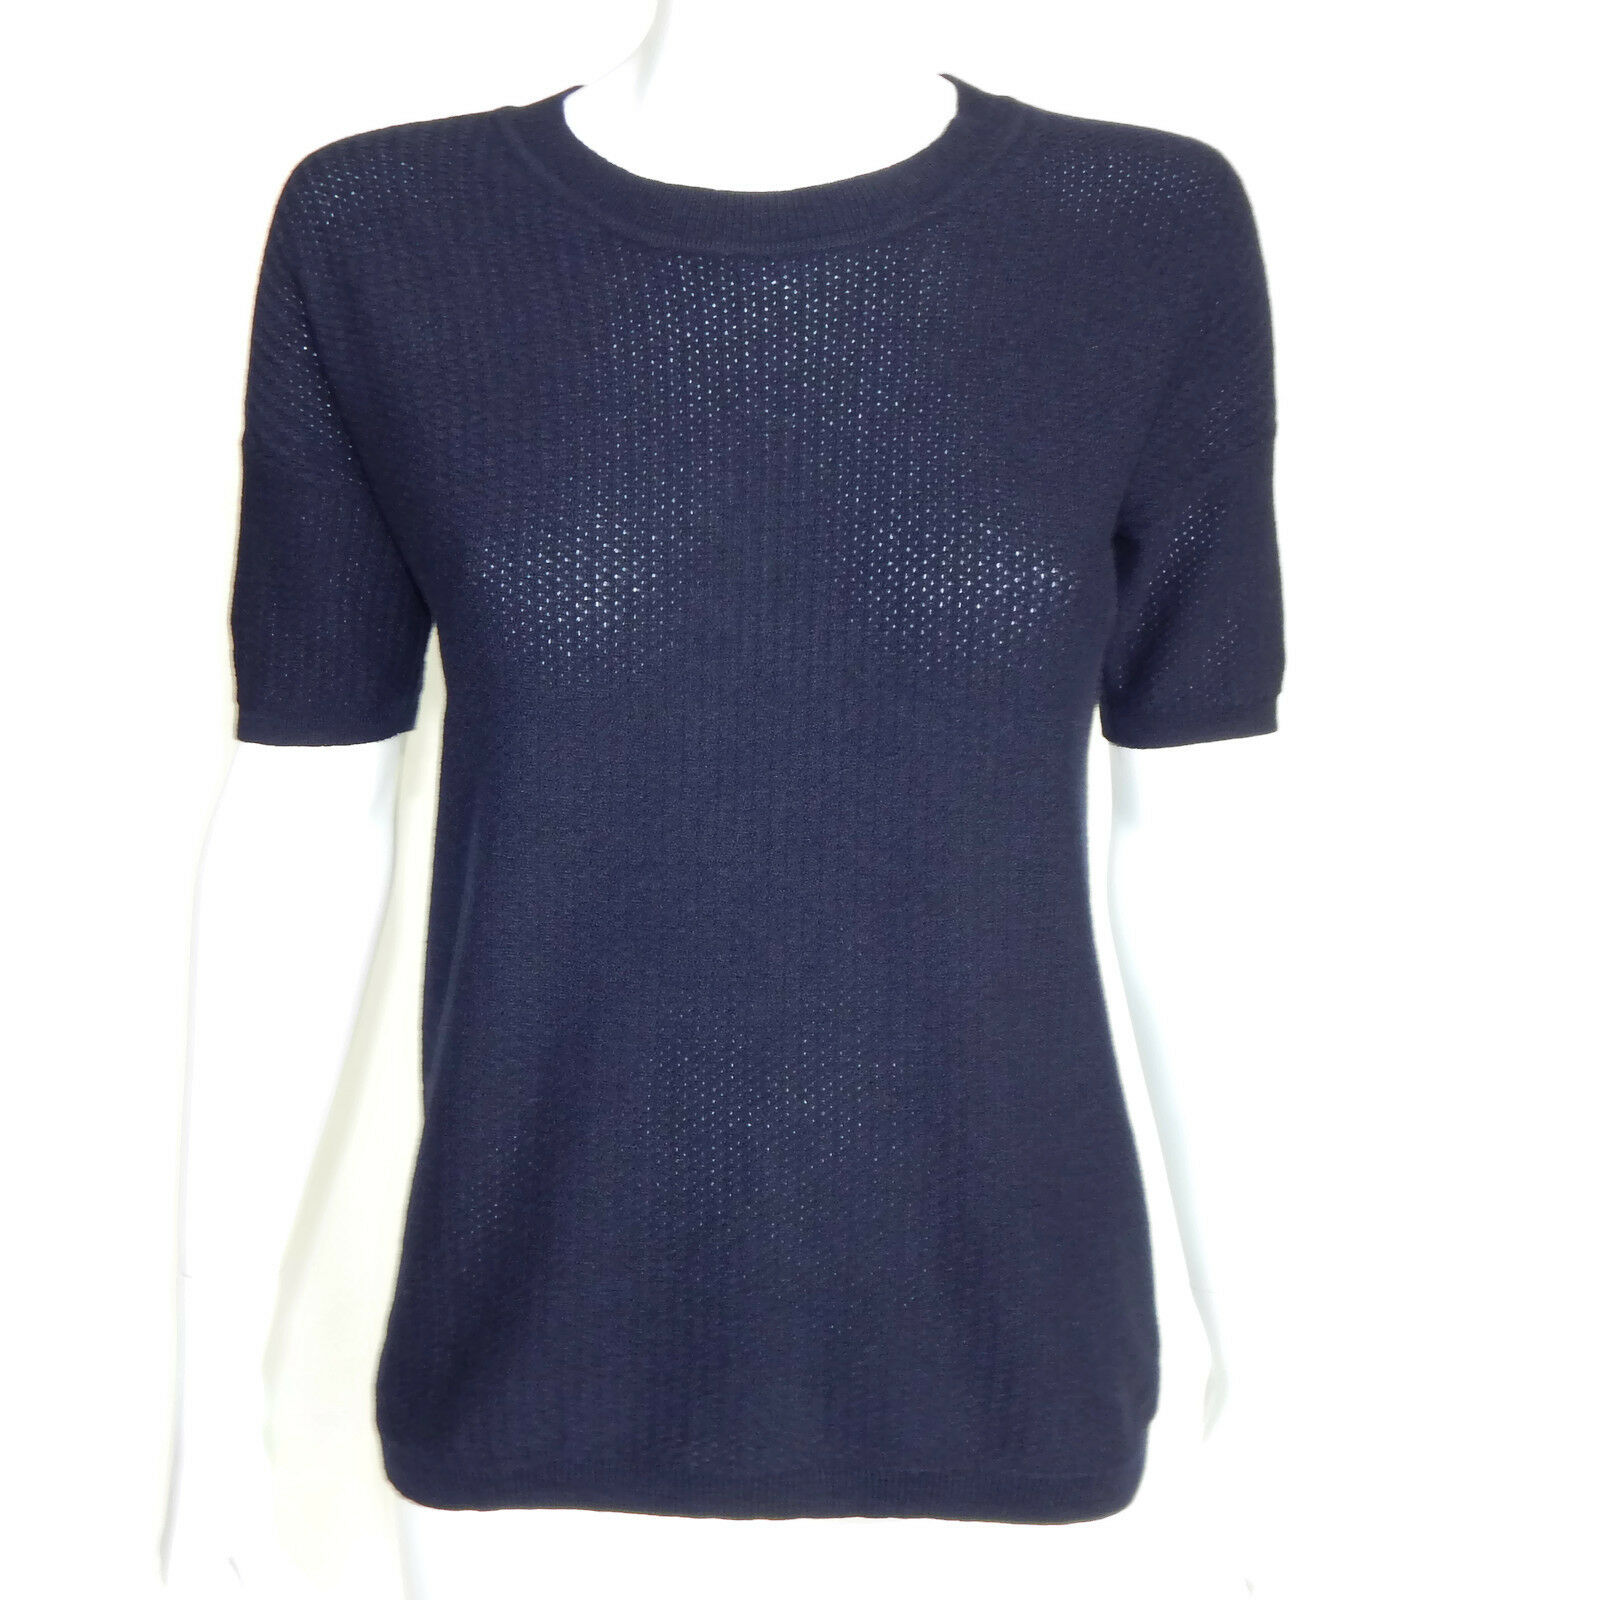 J. CREW COLLECTION Italian Cashmere bluee Perforated Short Sleeve Sweater XS 1935